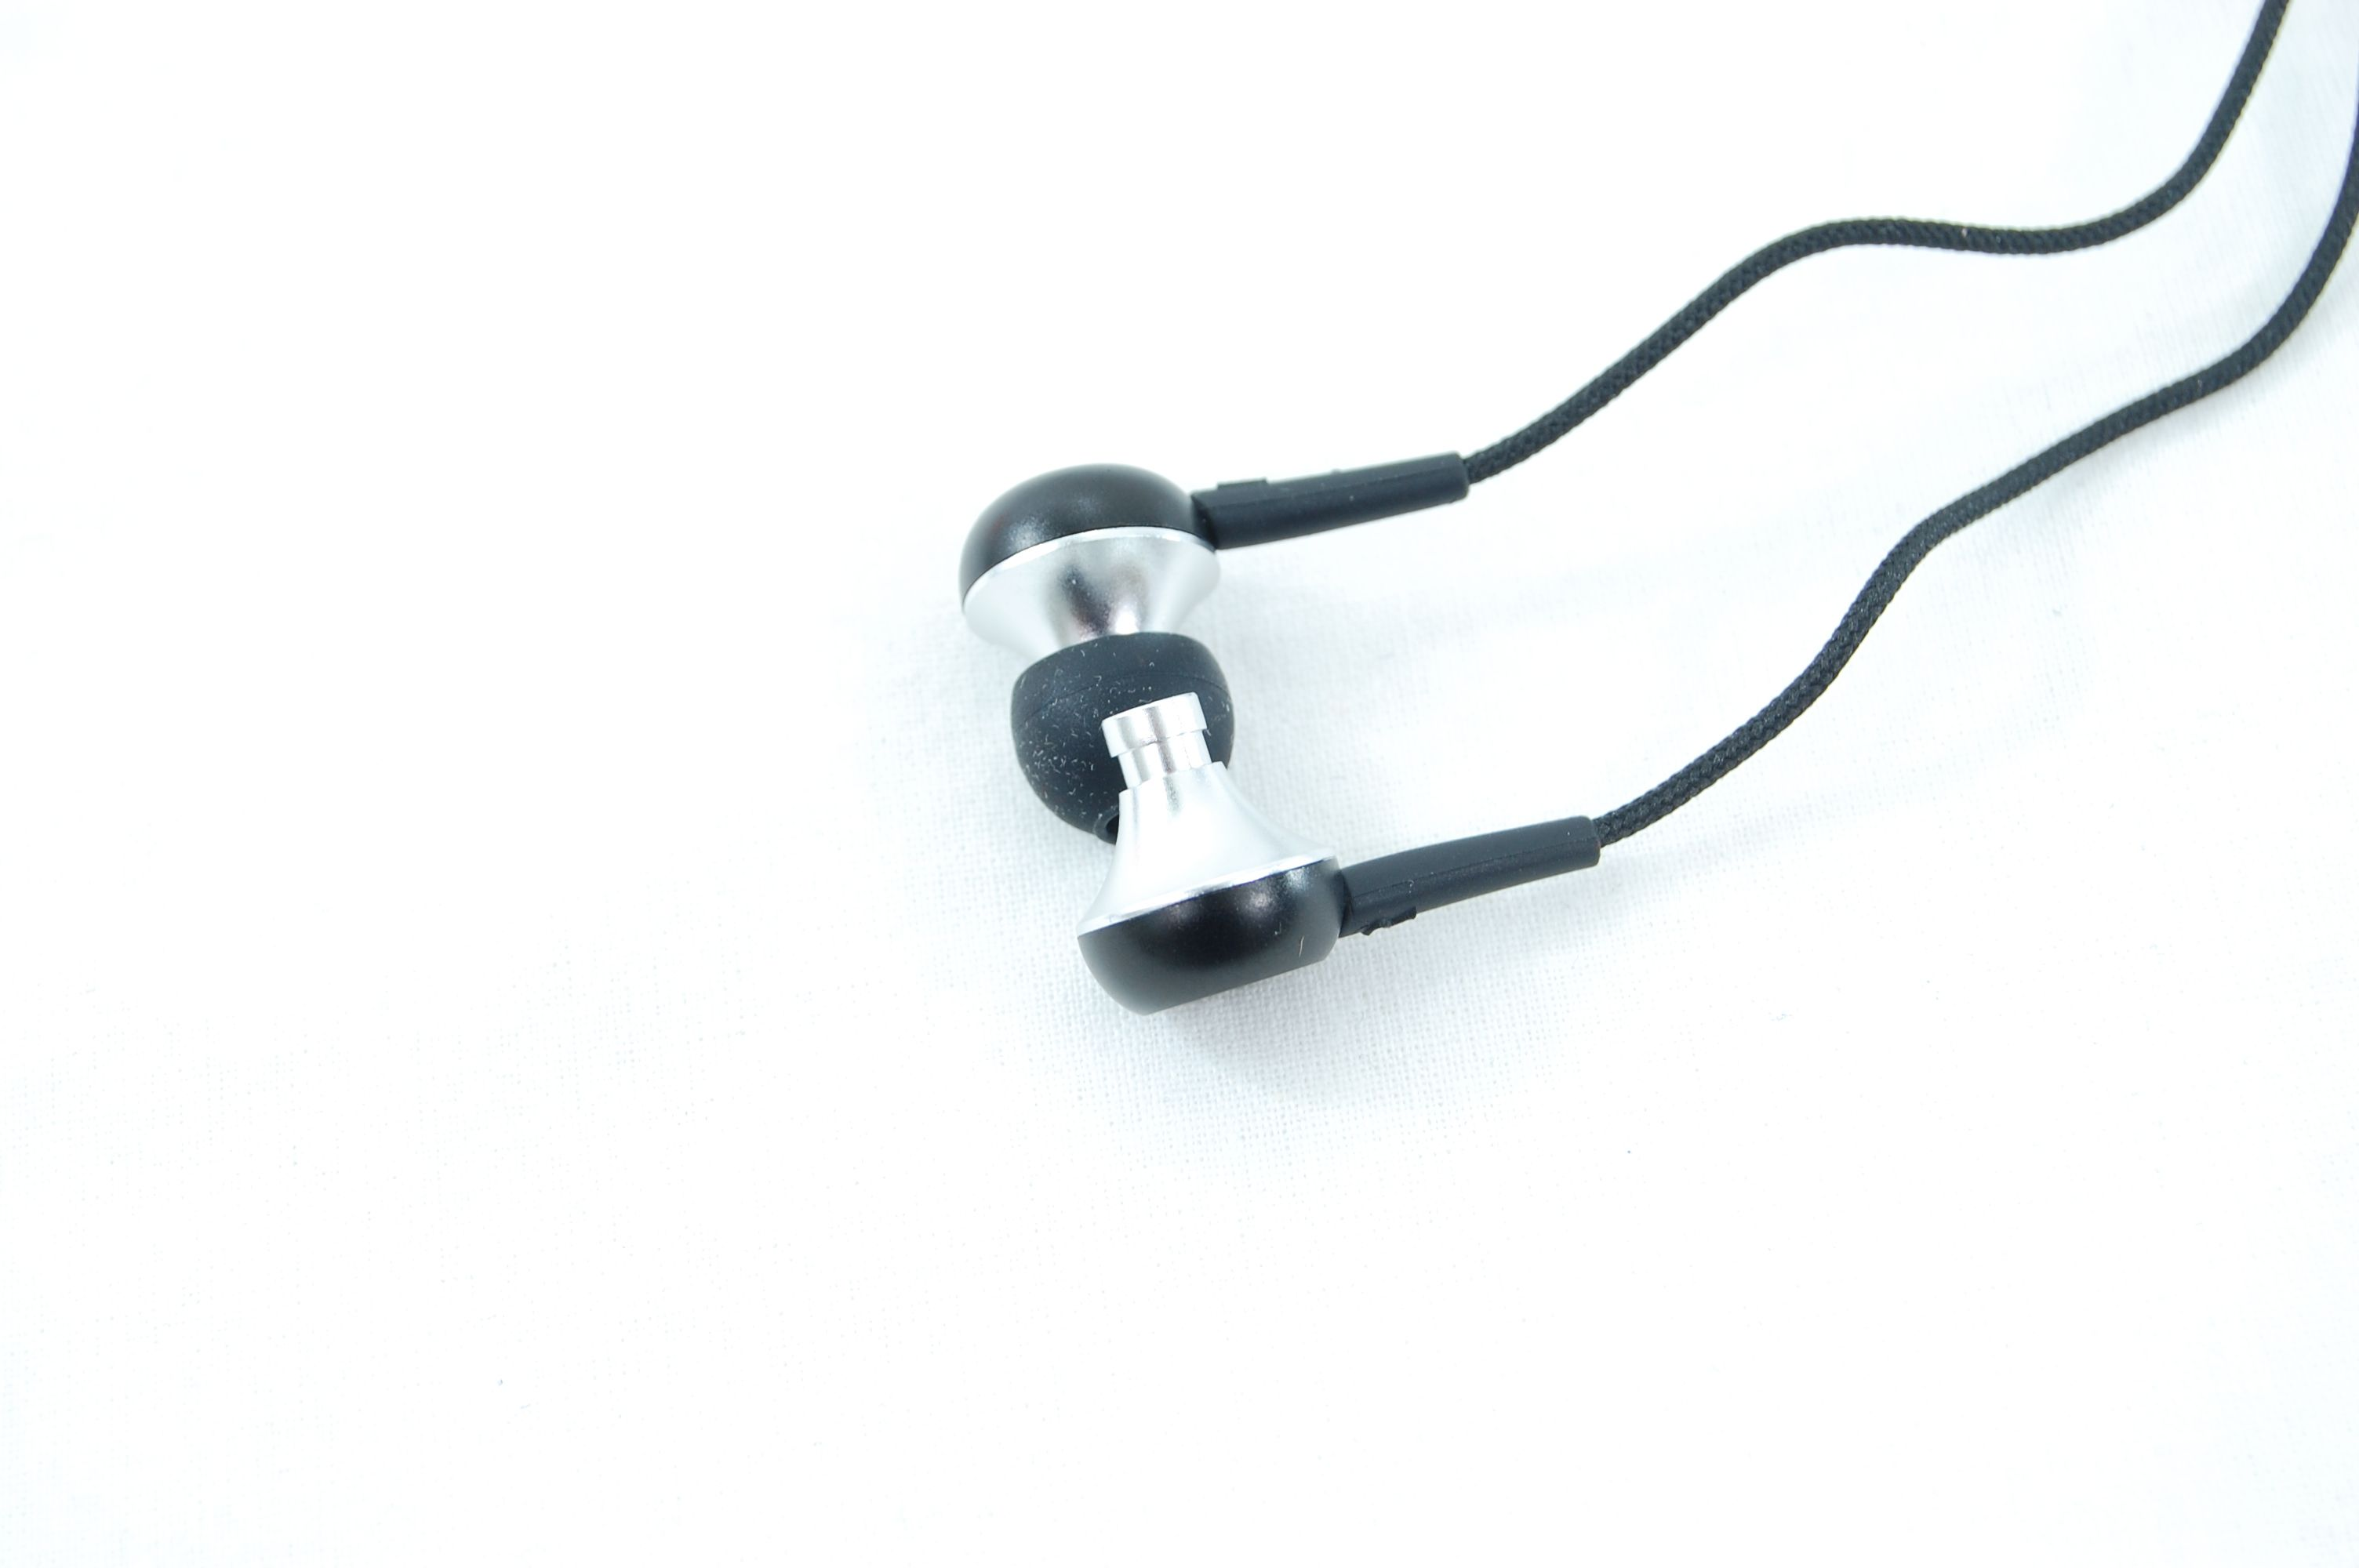 RHA MA 350 Noise Isolating Aluminum Earphones Review - Introduction